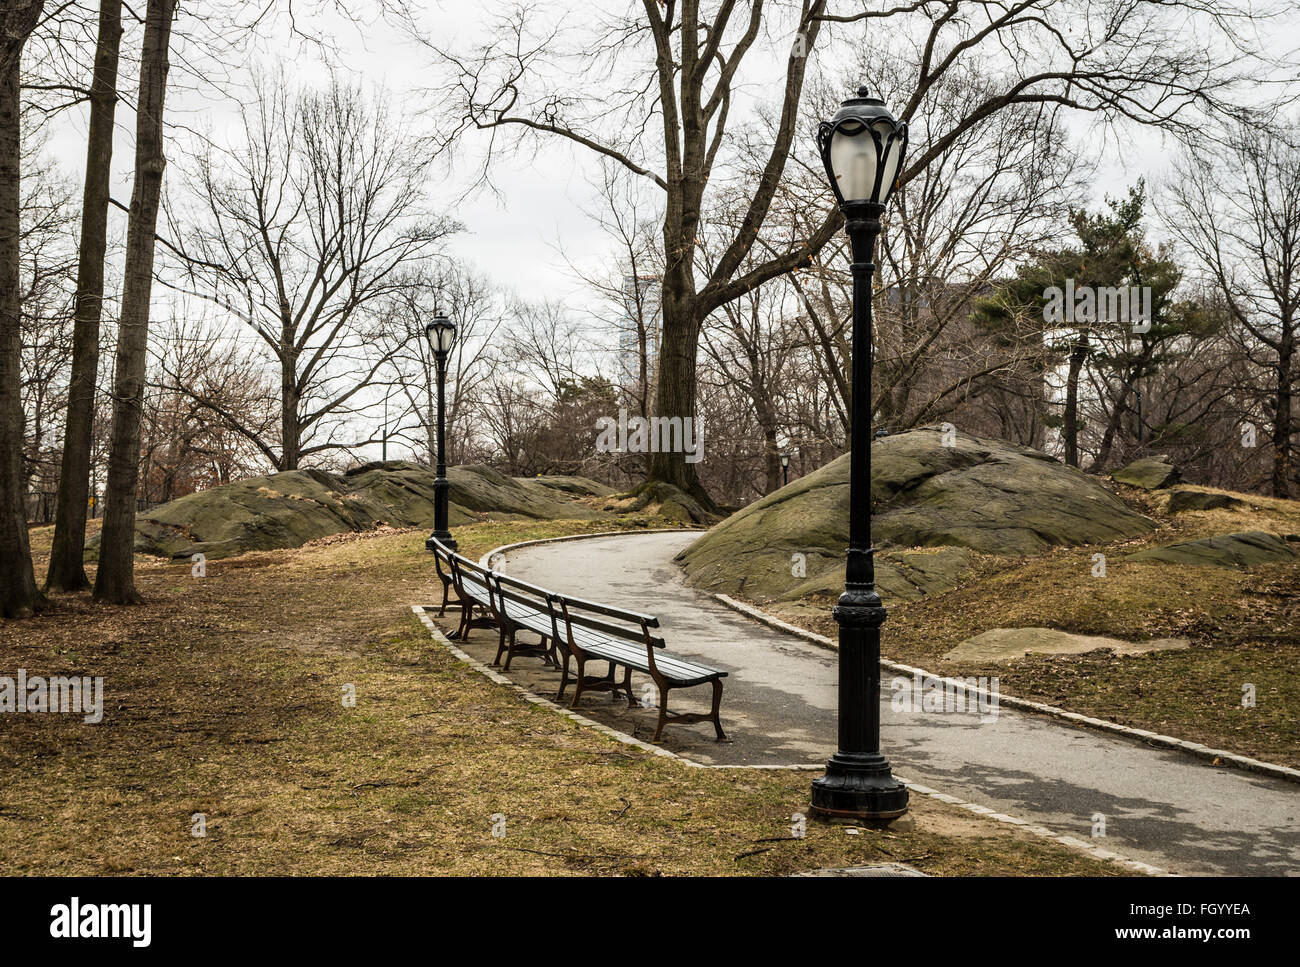 Winding footpath in Central Park, New York, with trees, lamp posts, and benches in Winter. - Stock Image